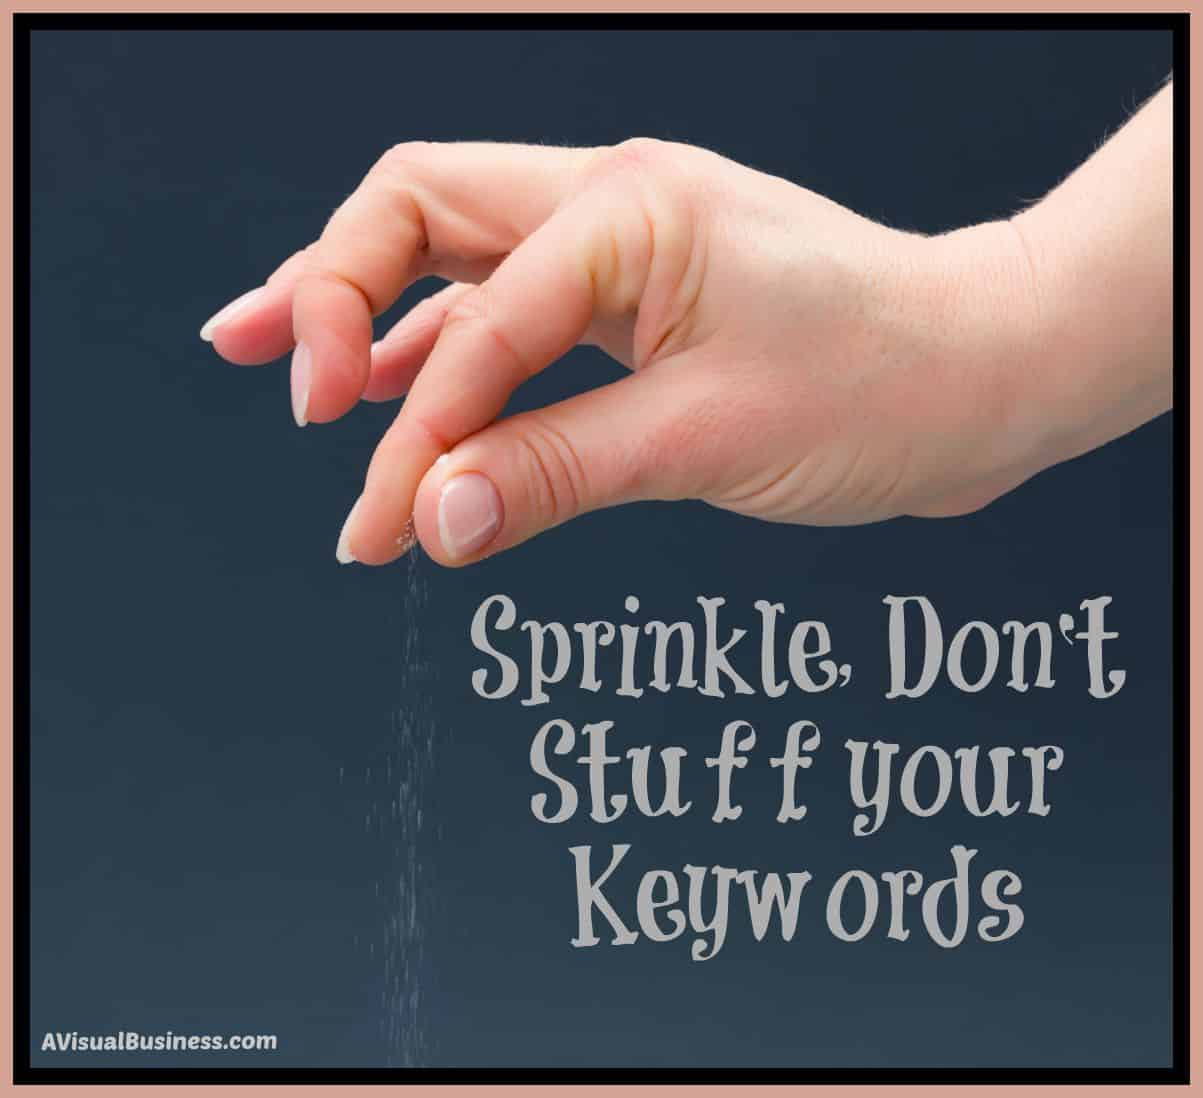 Sprinkle & Don't Stuff Your Keywords in Content